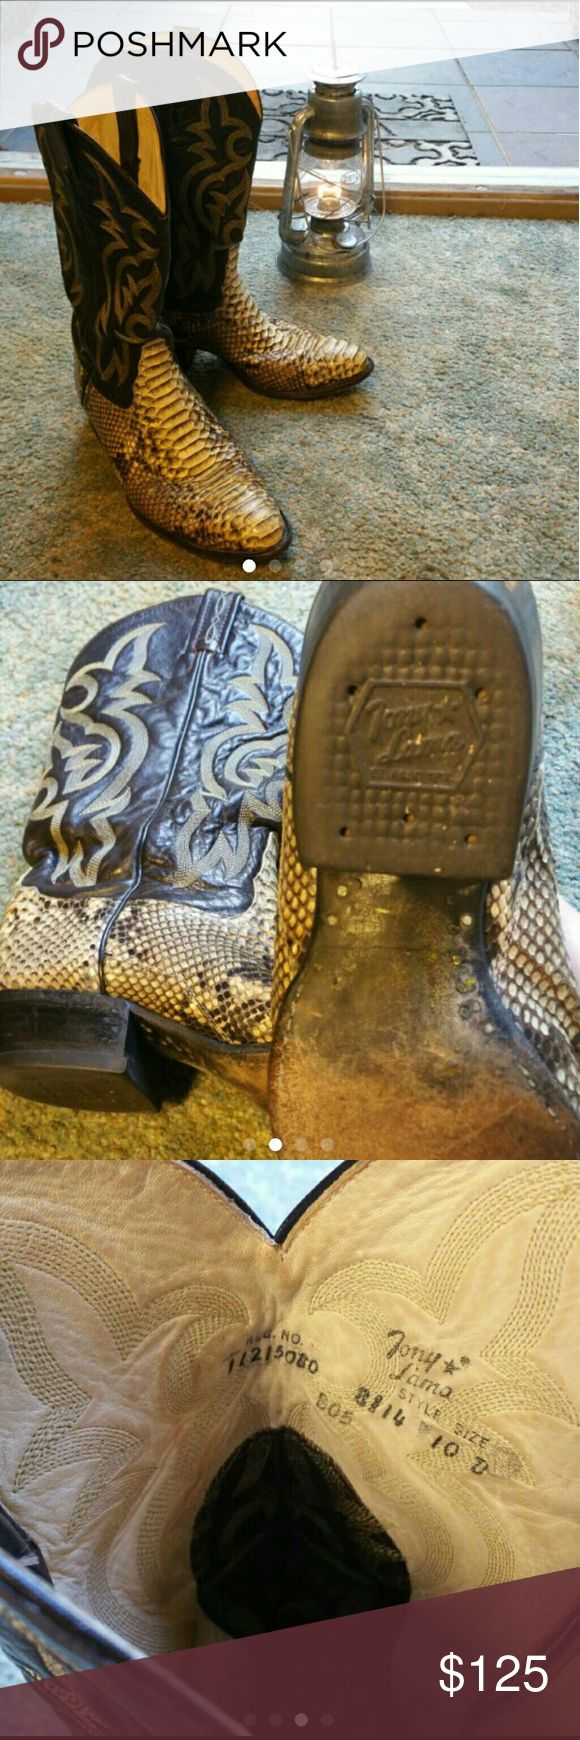 Tony Lama Leather & Python Cowboy Boots Men's size 10 leather cowboy boots with real snakeskin detail in great condition. No scuffs Tony Lama Shoes Boots